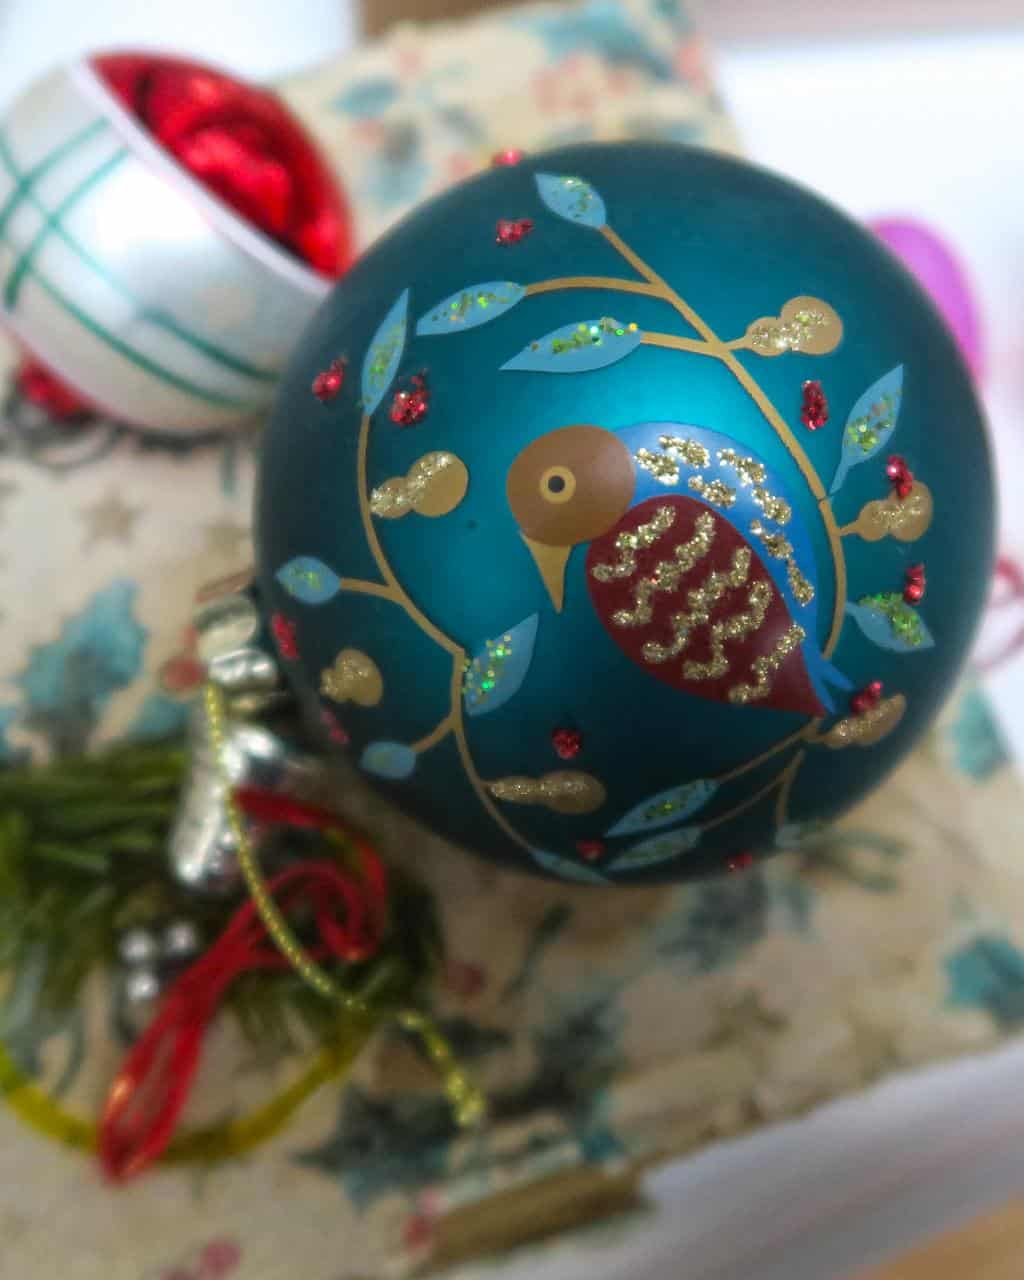 This isn't a vintage bauble, it's my newly purchased bird decoration